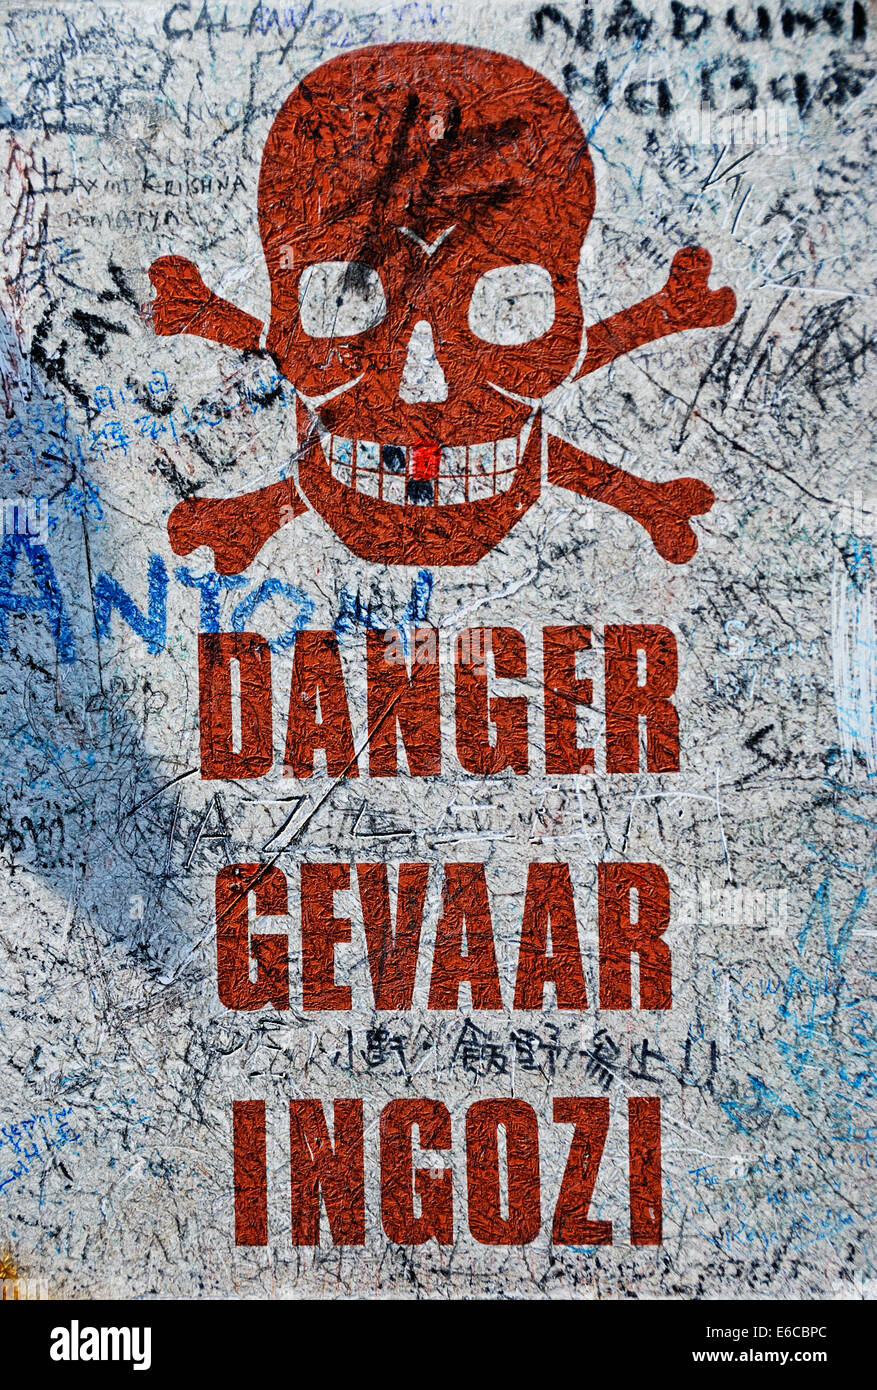 Danger warning sign in English and Afrikaans languages, South Africa - Stock Image